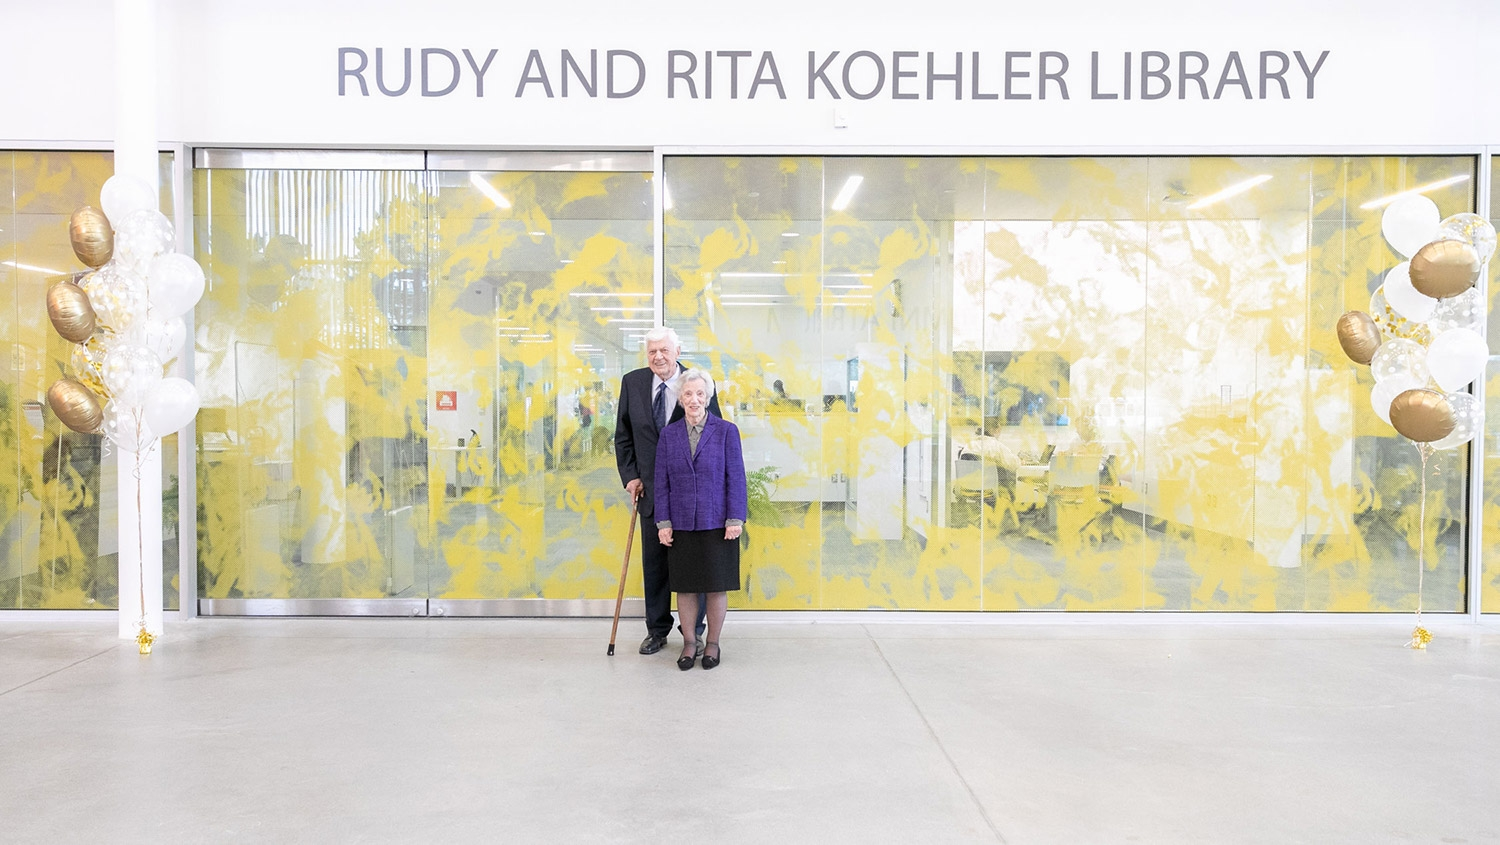 Rudy and Rita Koehler Library